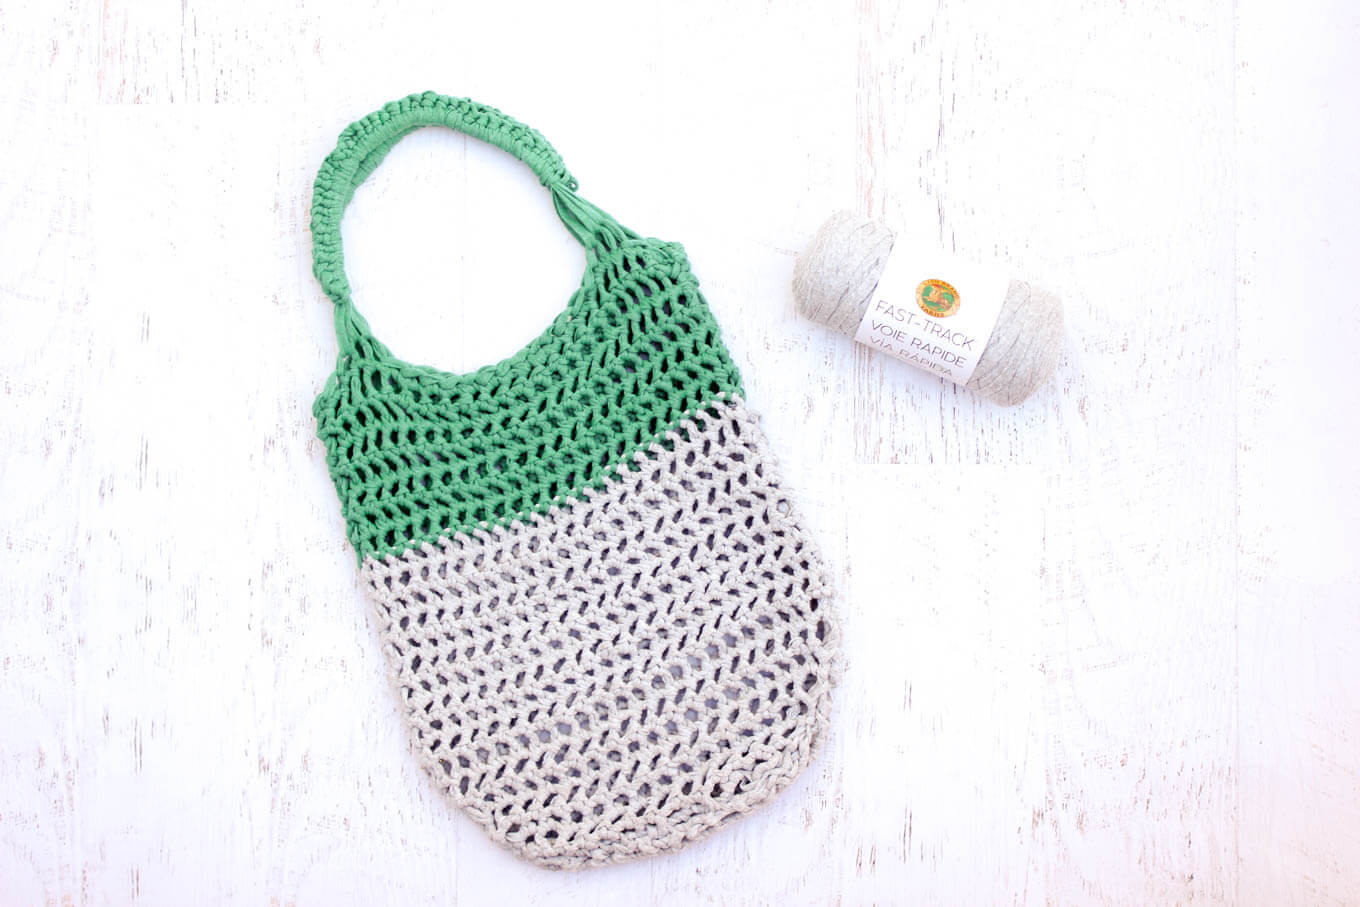 58 Crochet Bag Patterns - The Funky Stitch